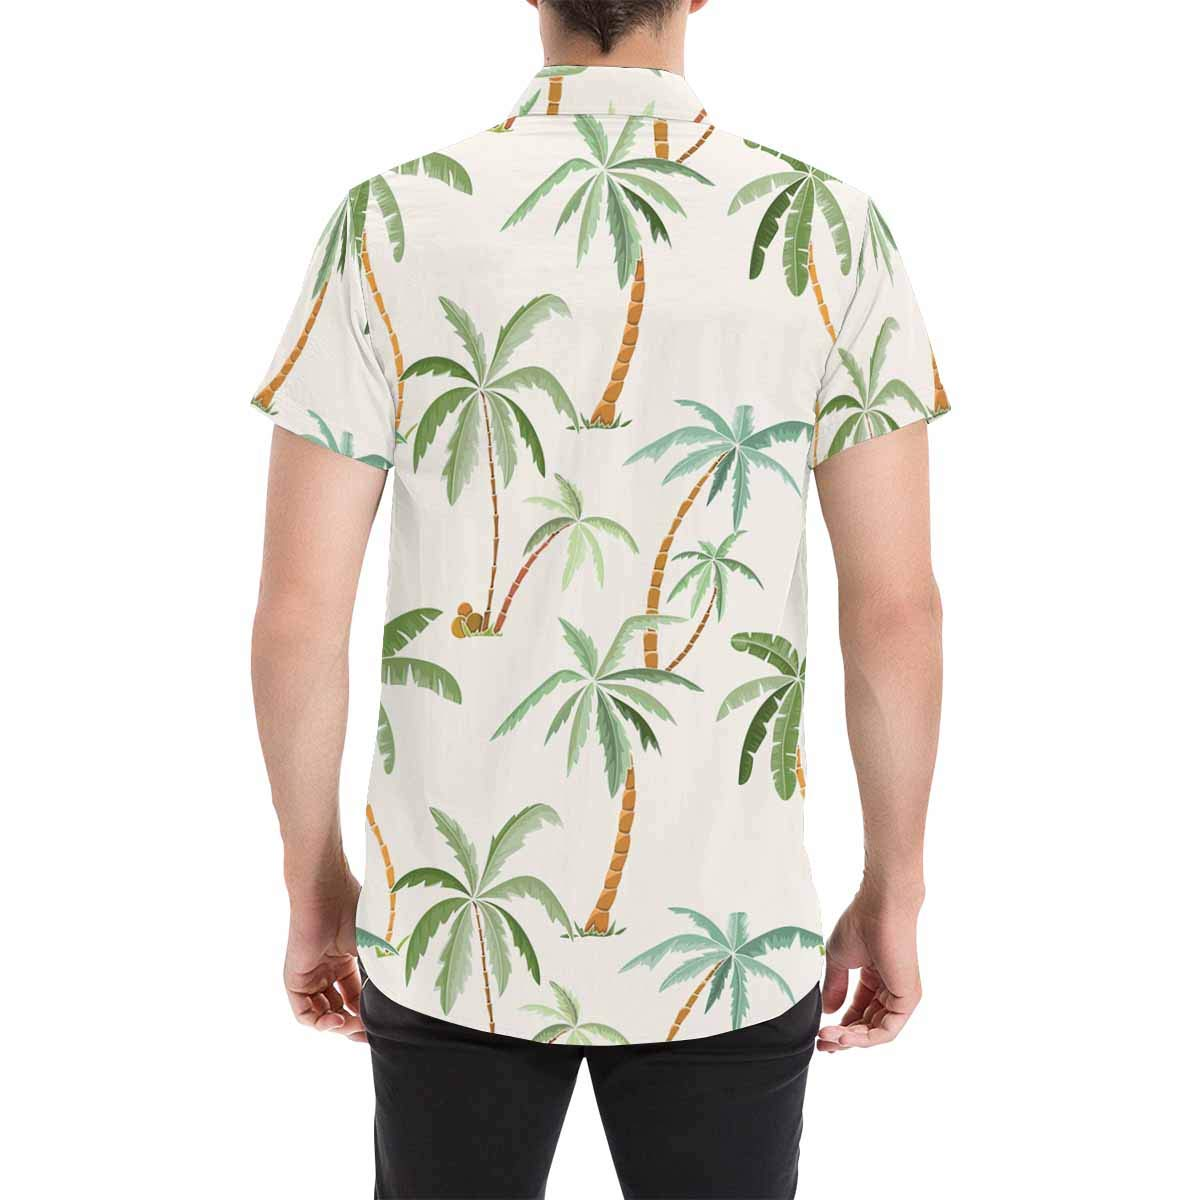 InterestPrint Casual Palm Leaves Ethnic Geometric Casual Button Down Beach Shirts